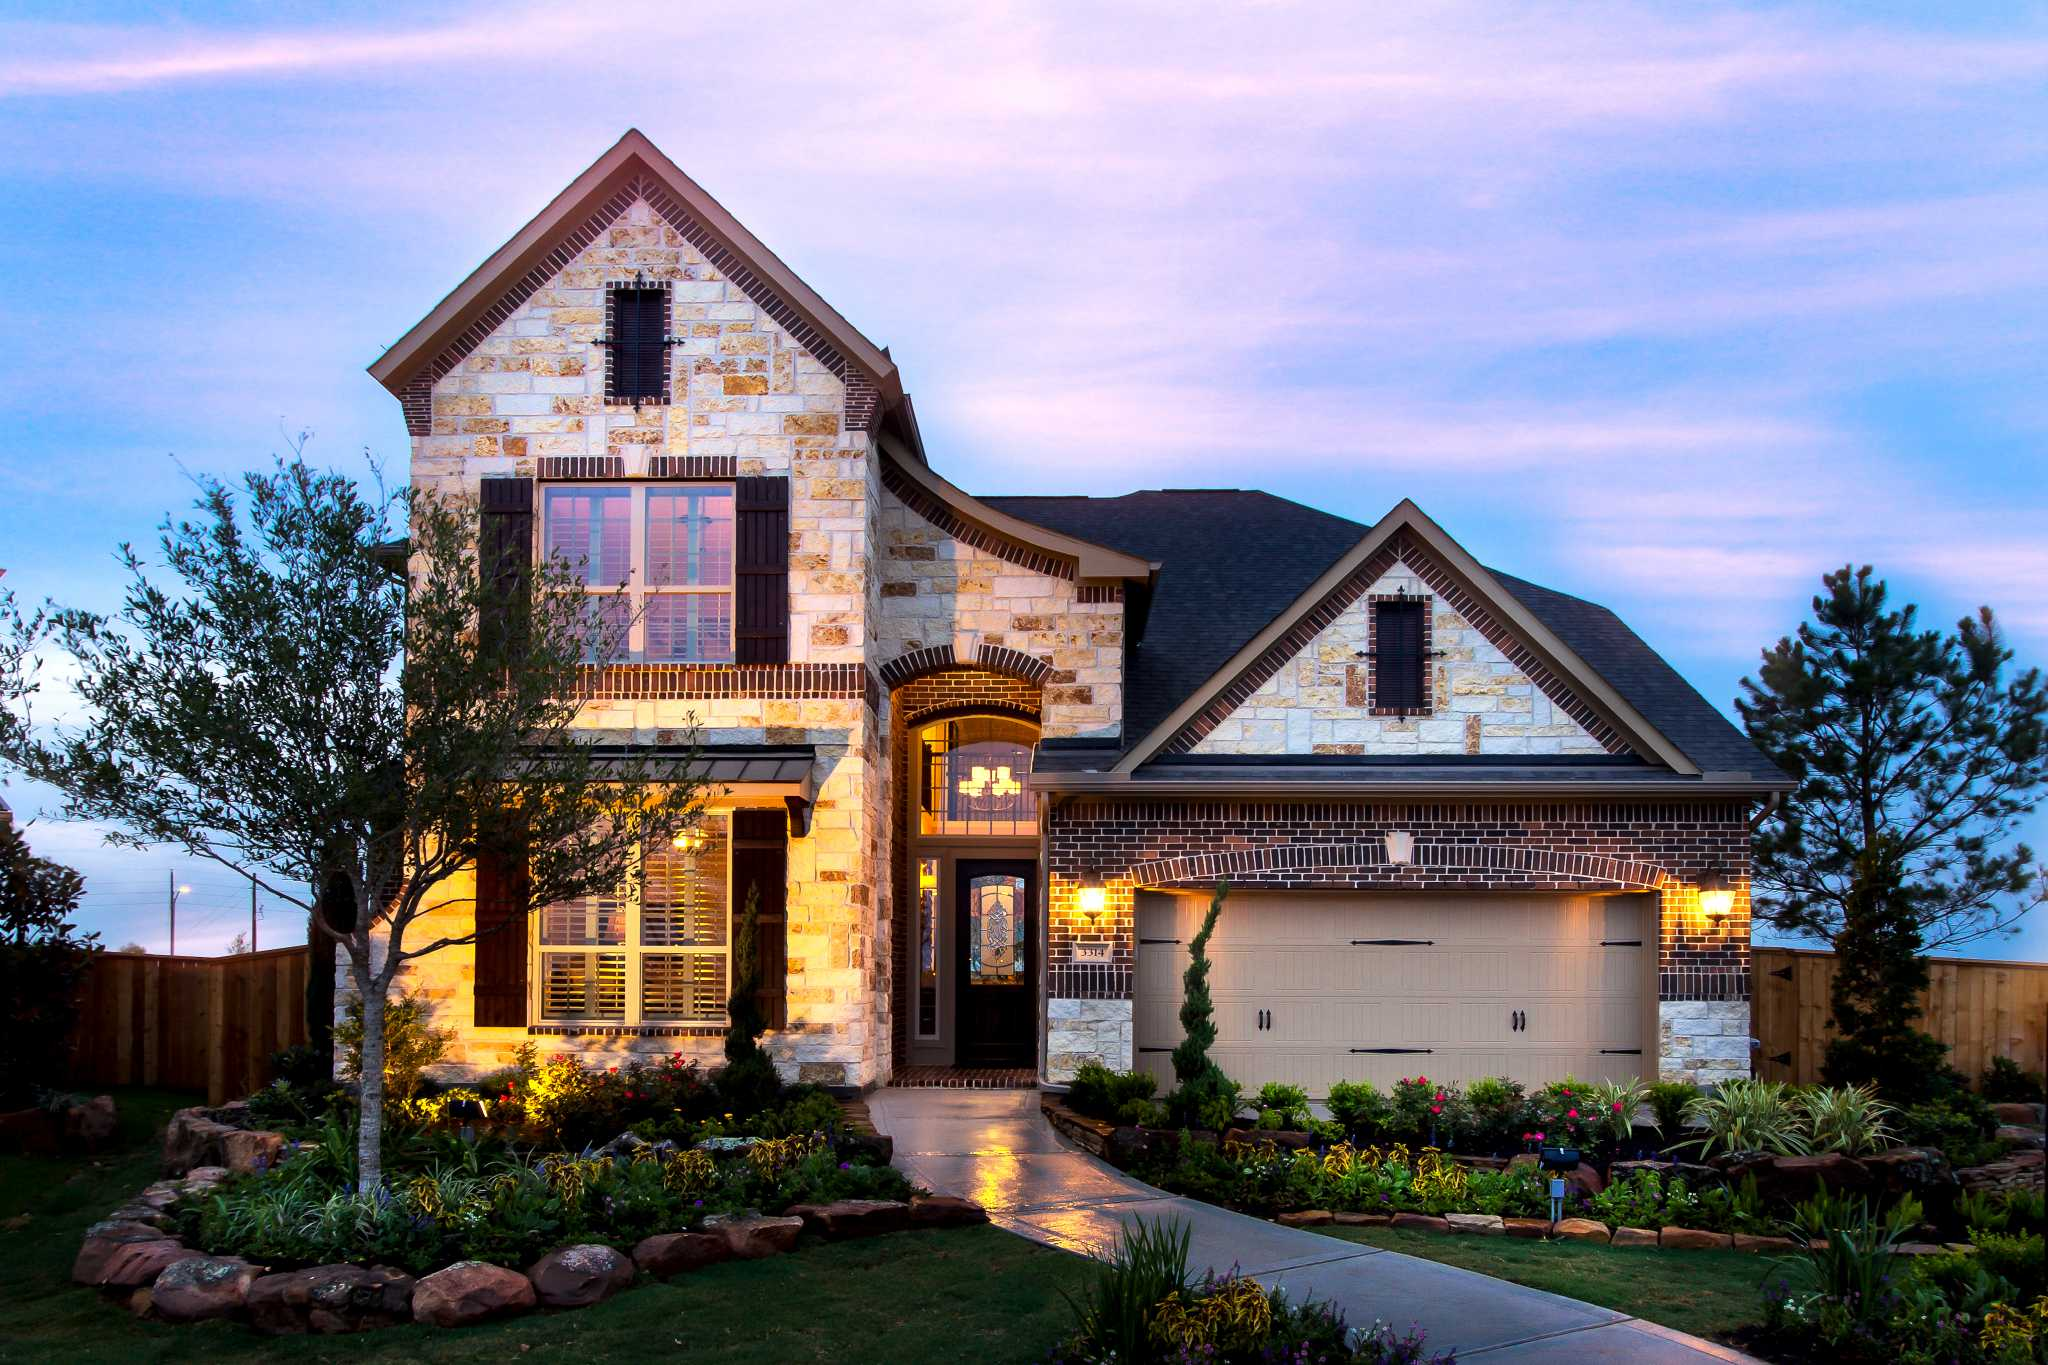 Cinco Ranch Offers New Homes From $350,000s By Ryland, Trendmaker   Houston  Chronicle